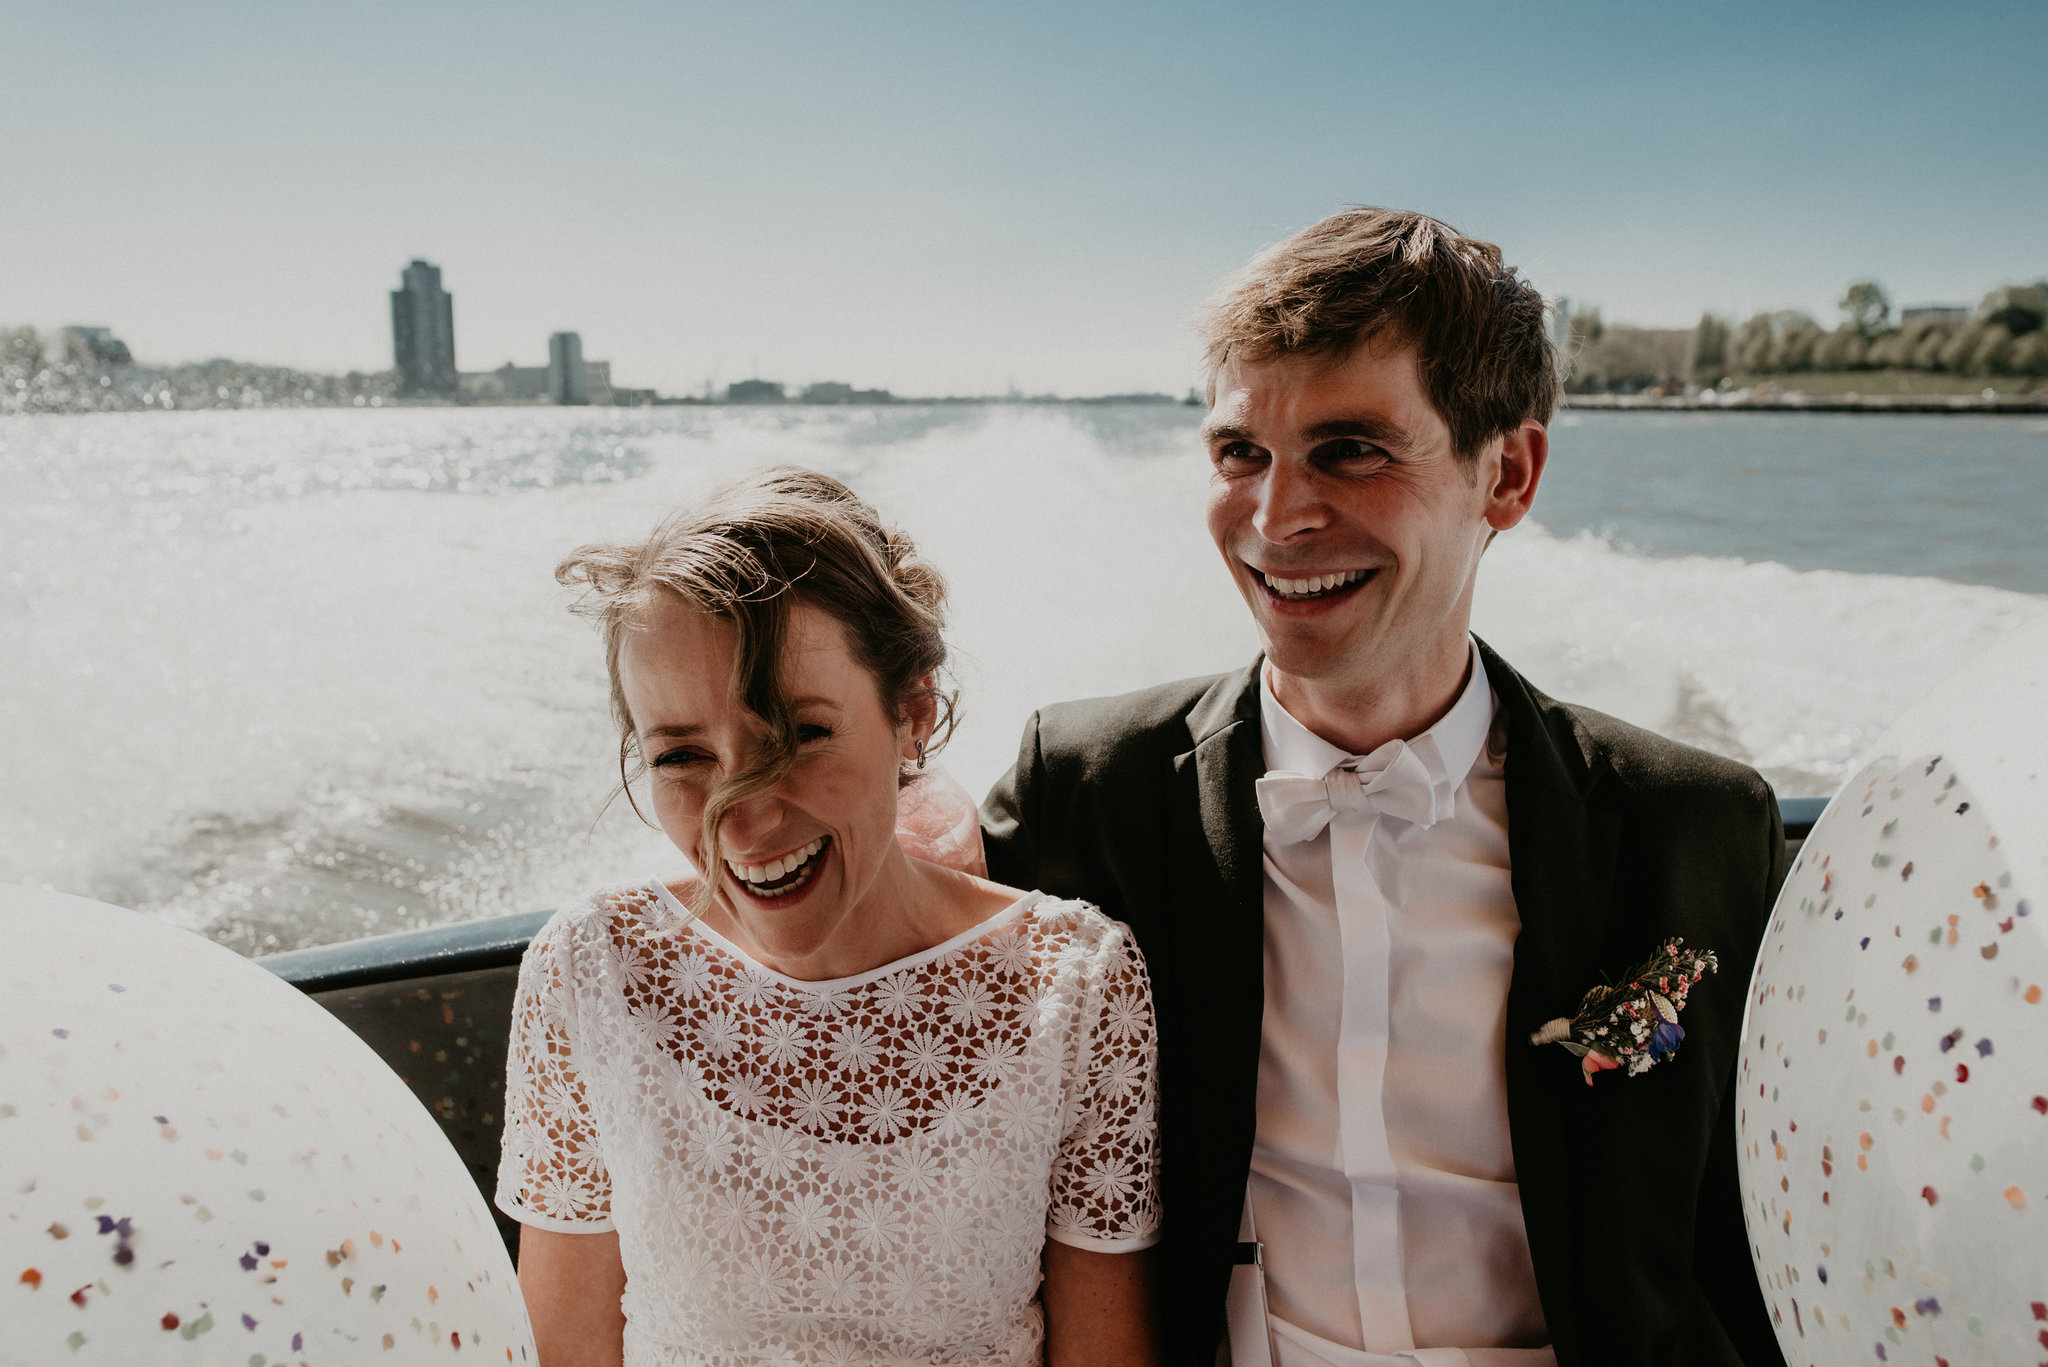 Bride and groom in the rotterdam water taxi